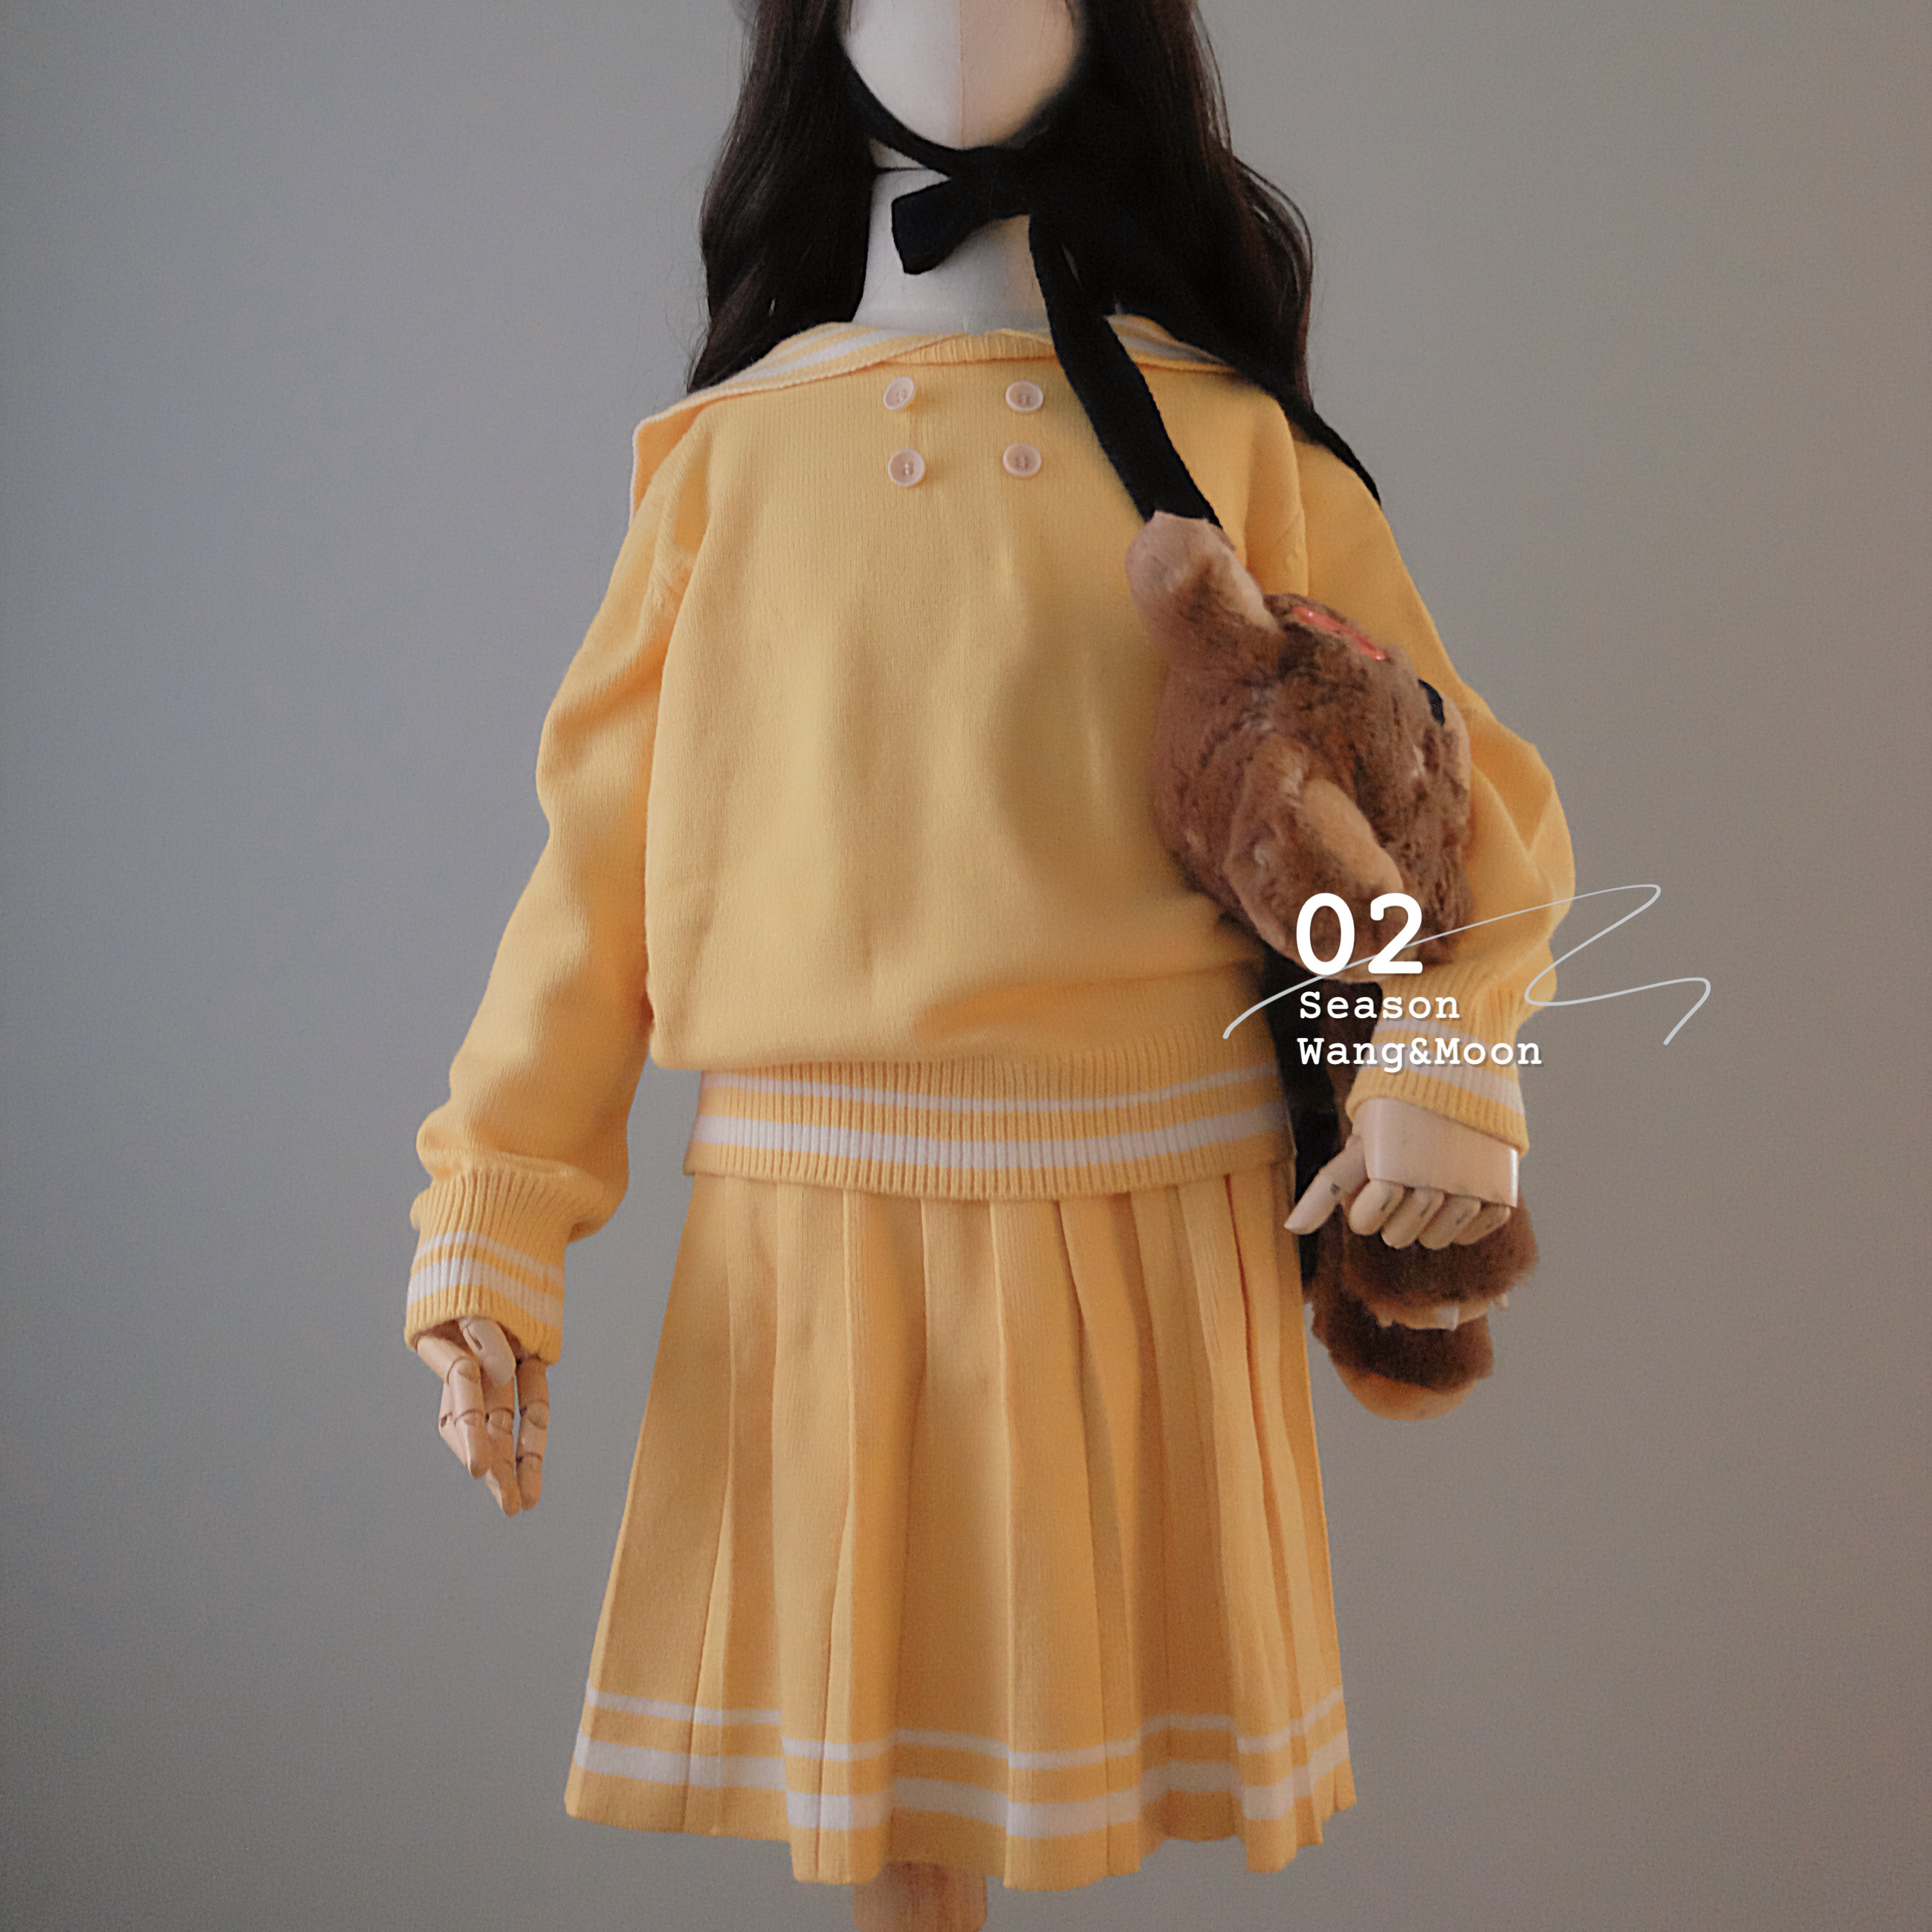 *Yueyuemei girl Erwang and moon academy wind net red foreign style girl autumn winter sailor sweater short skirt suit